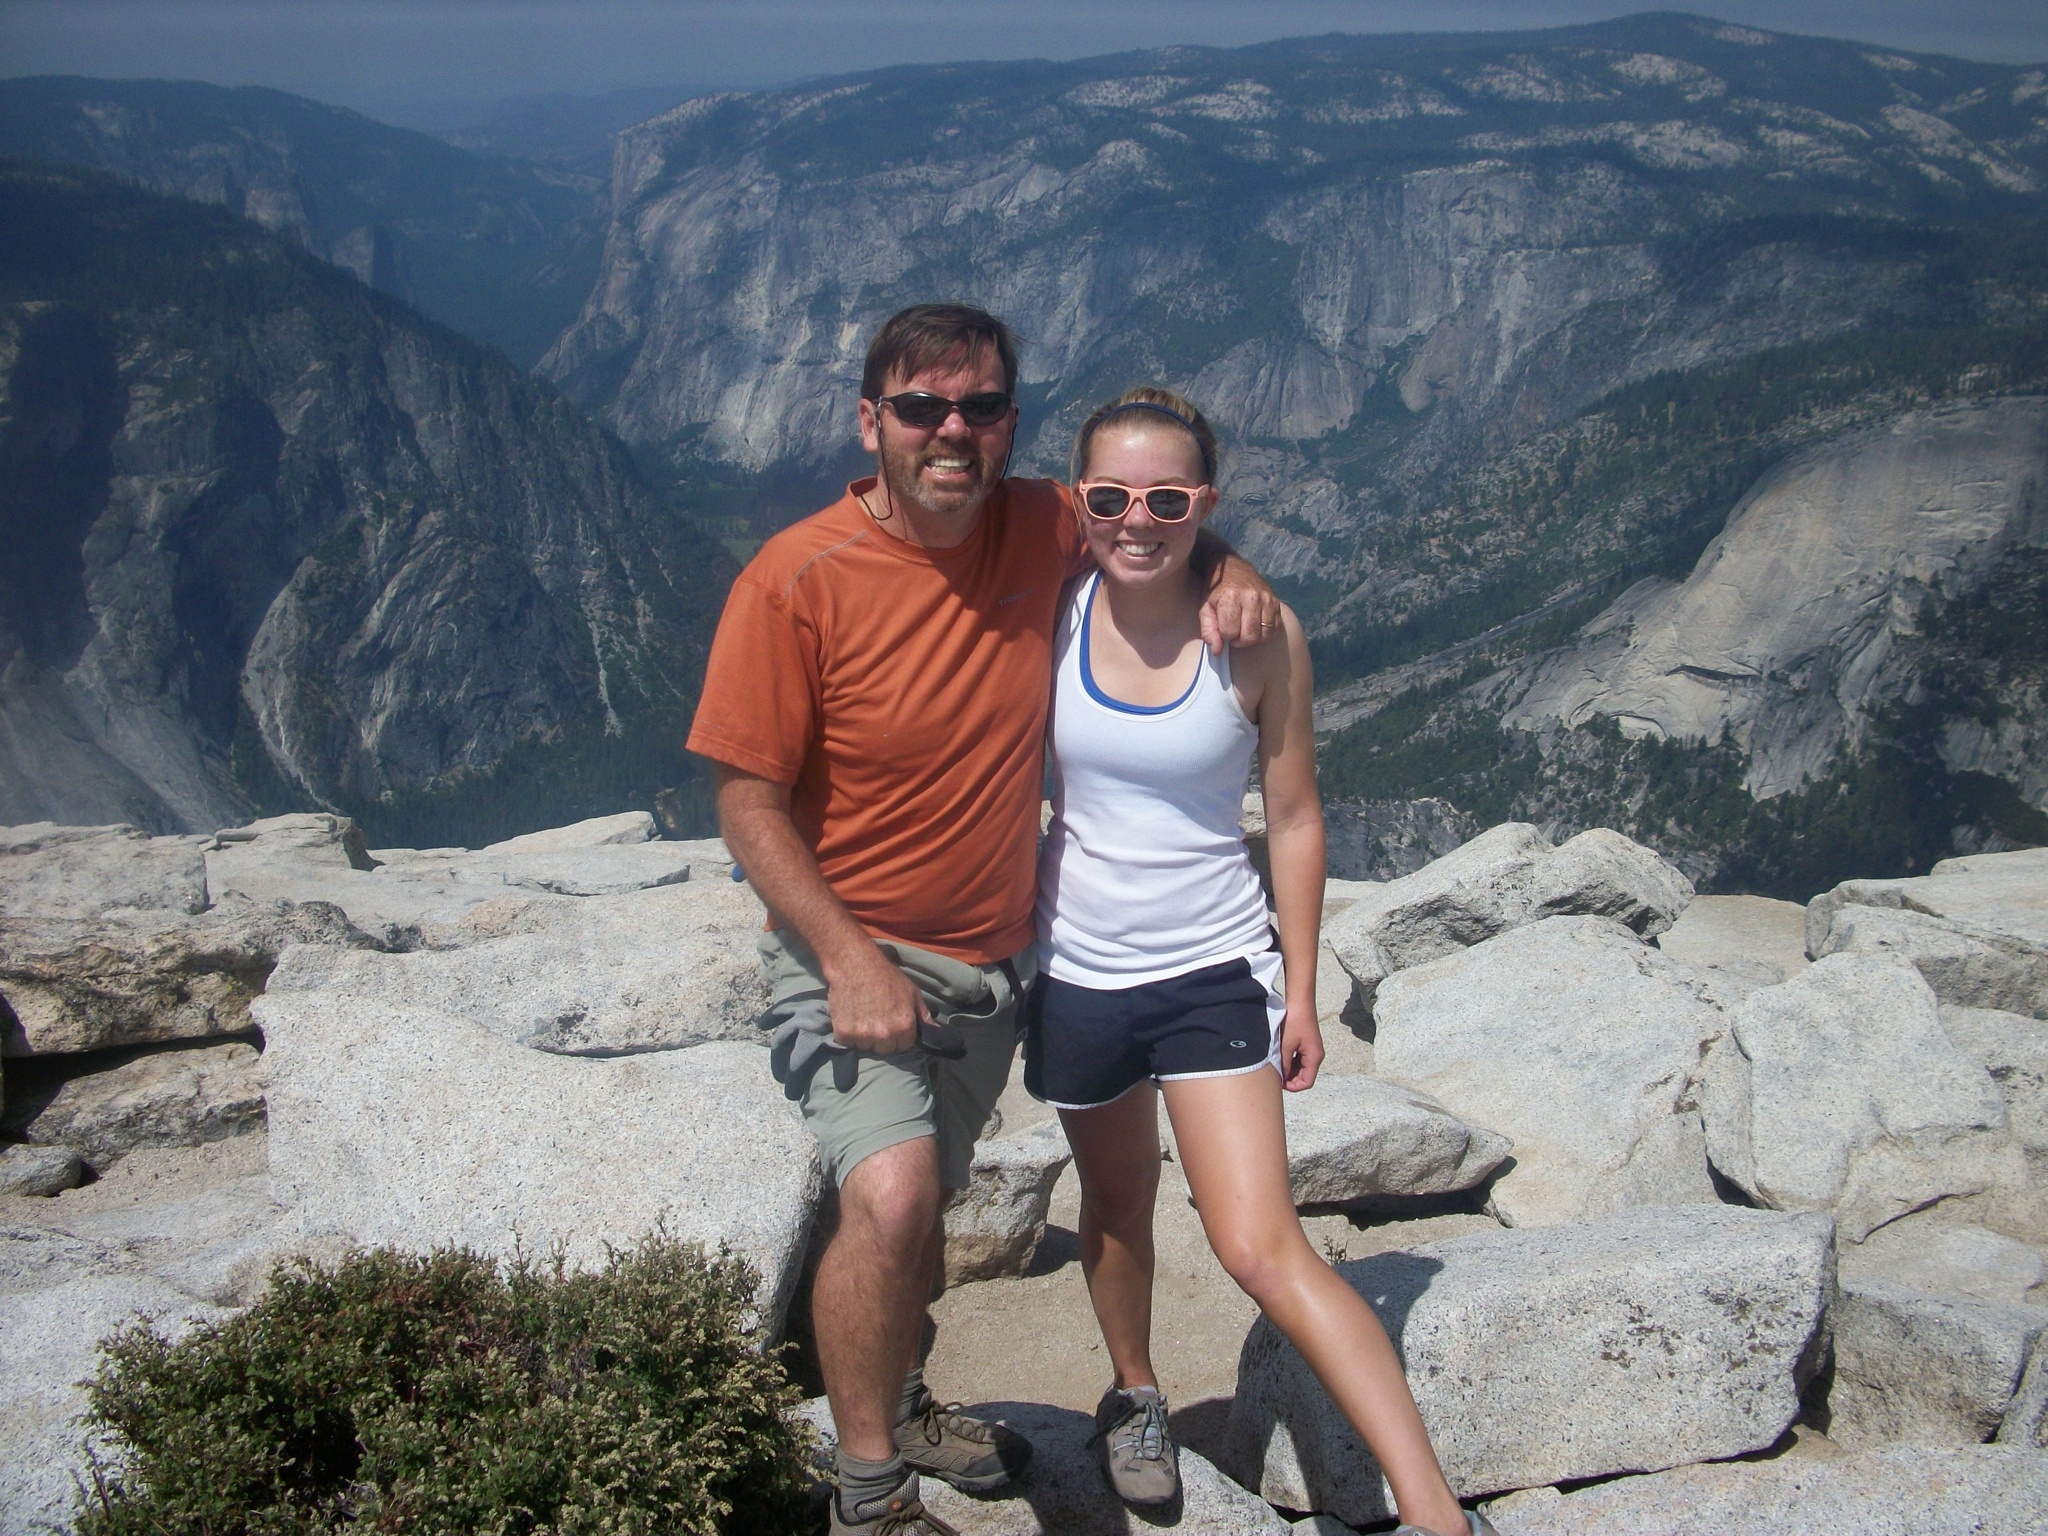 Hiking the PCT in memory of my tree-hugging, mountain-loving father